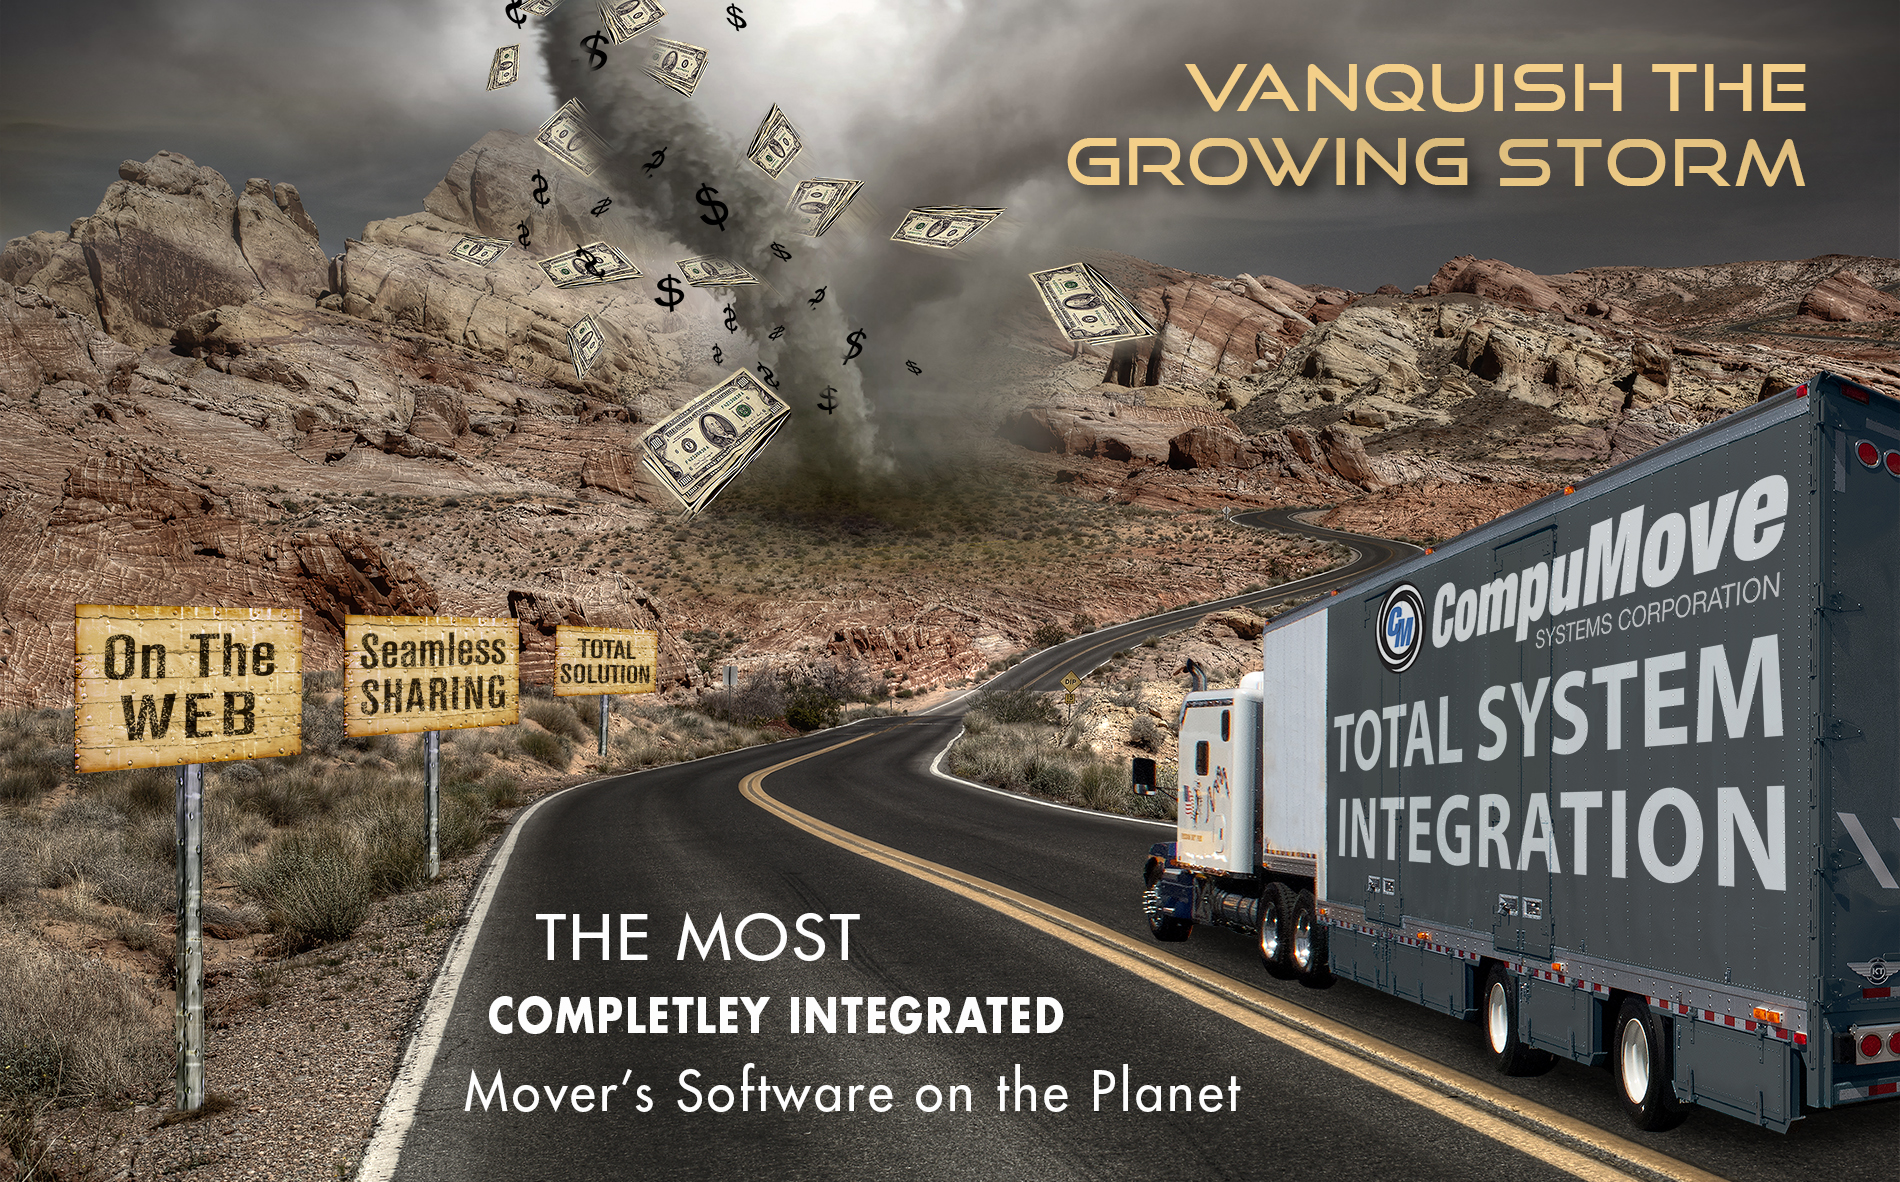 Vanquish The Growing Storm